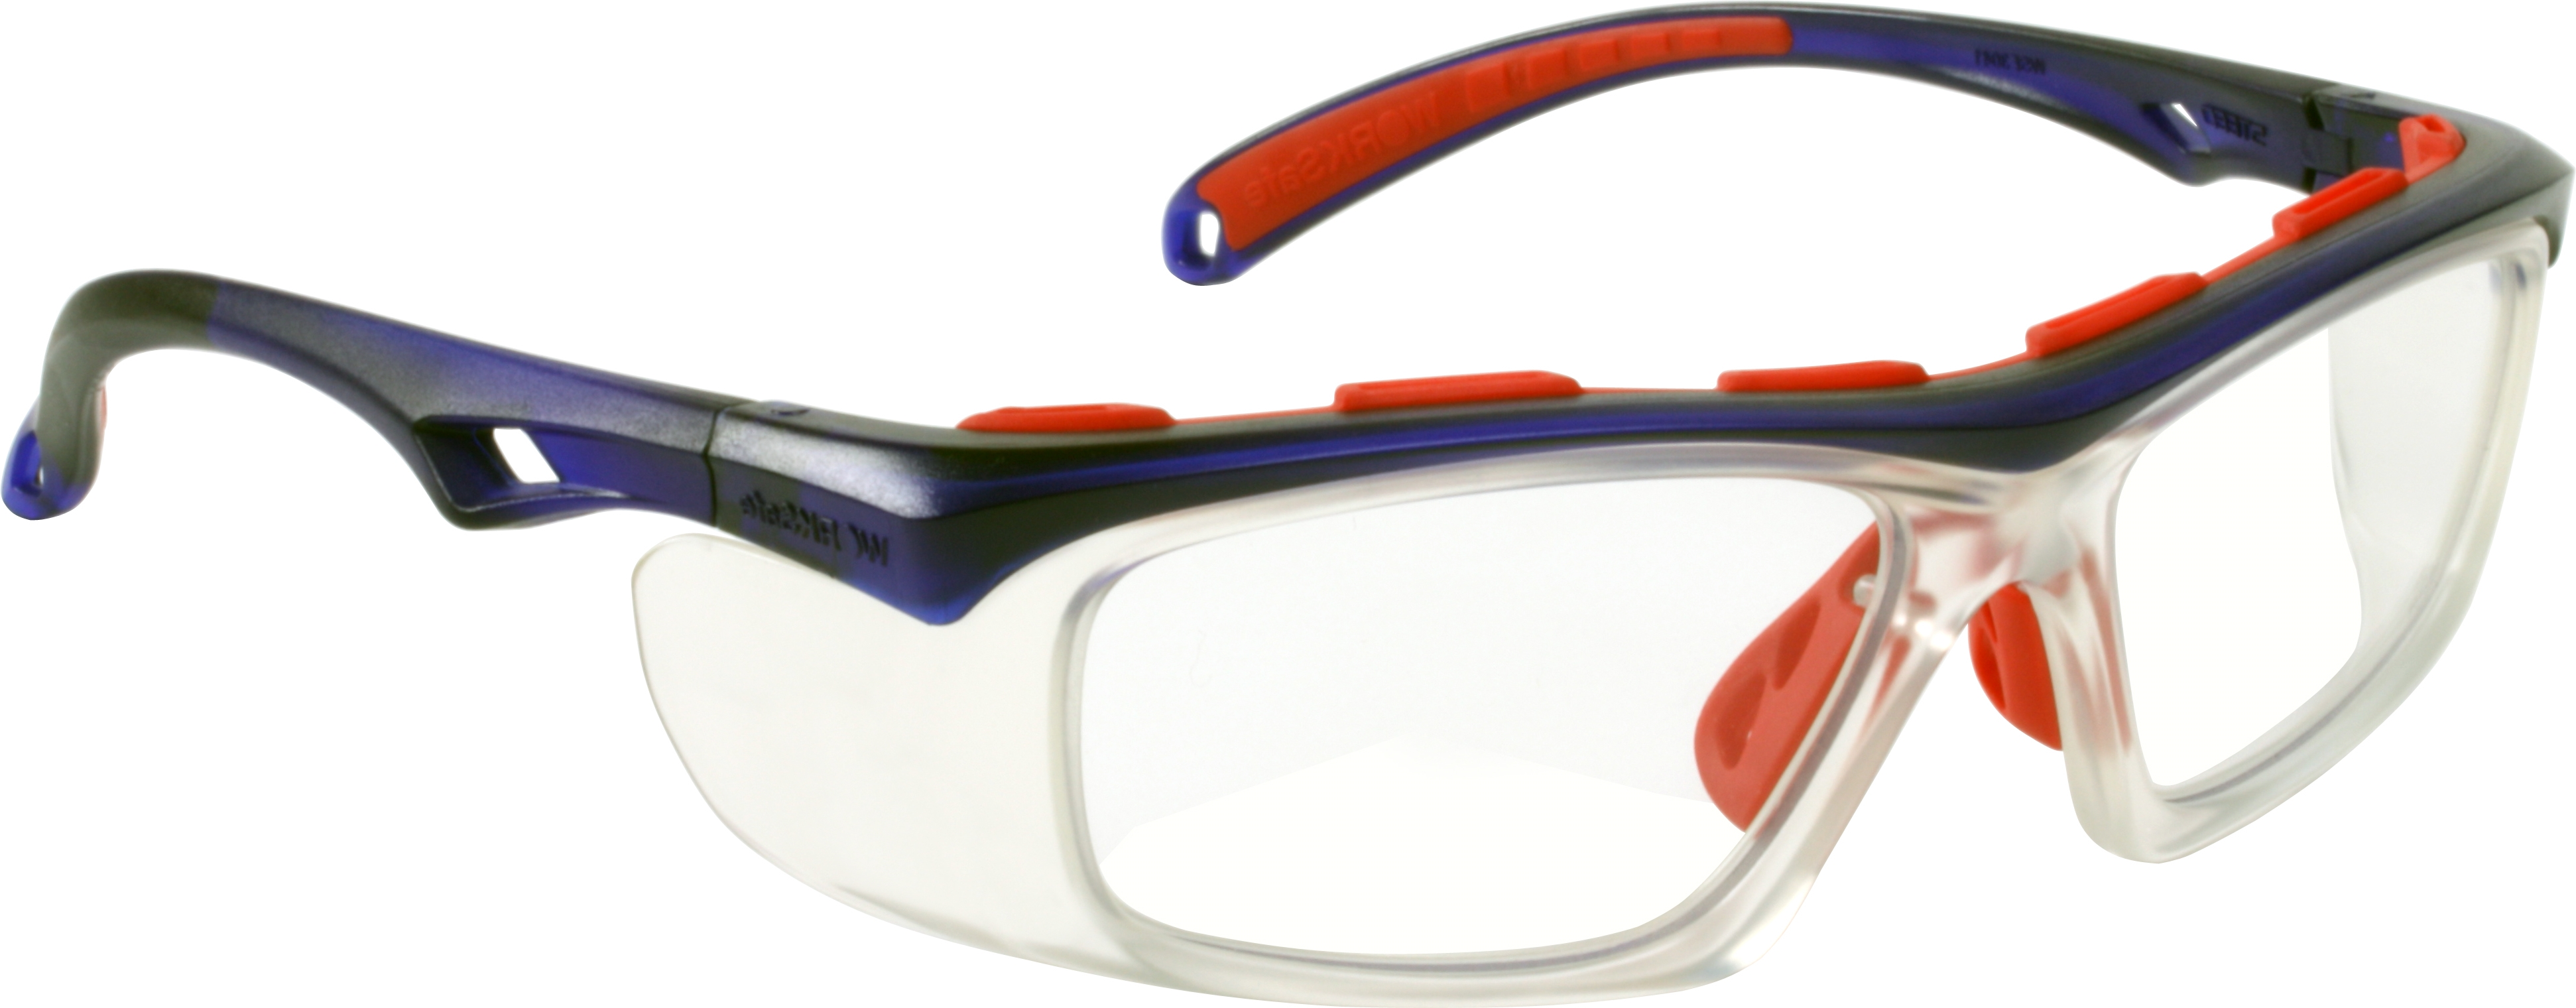 safety glasses prescription